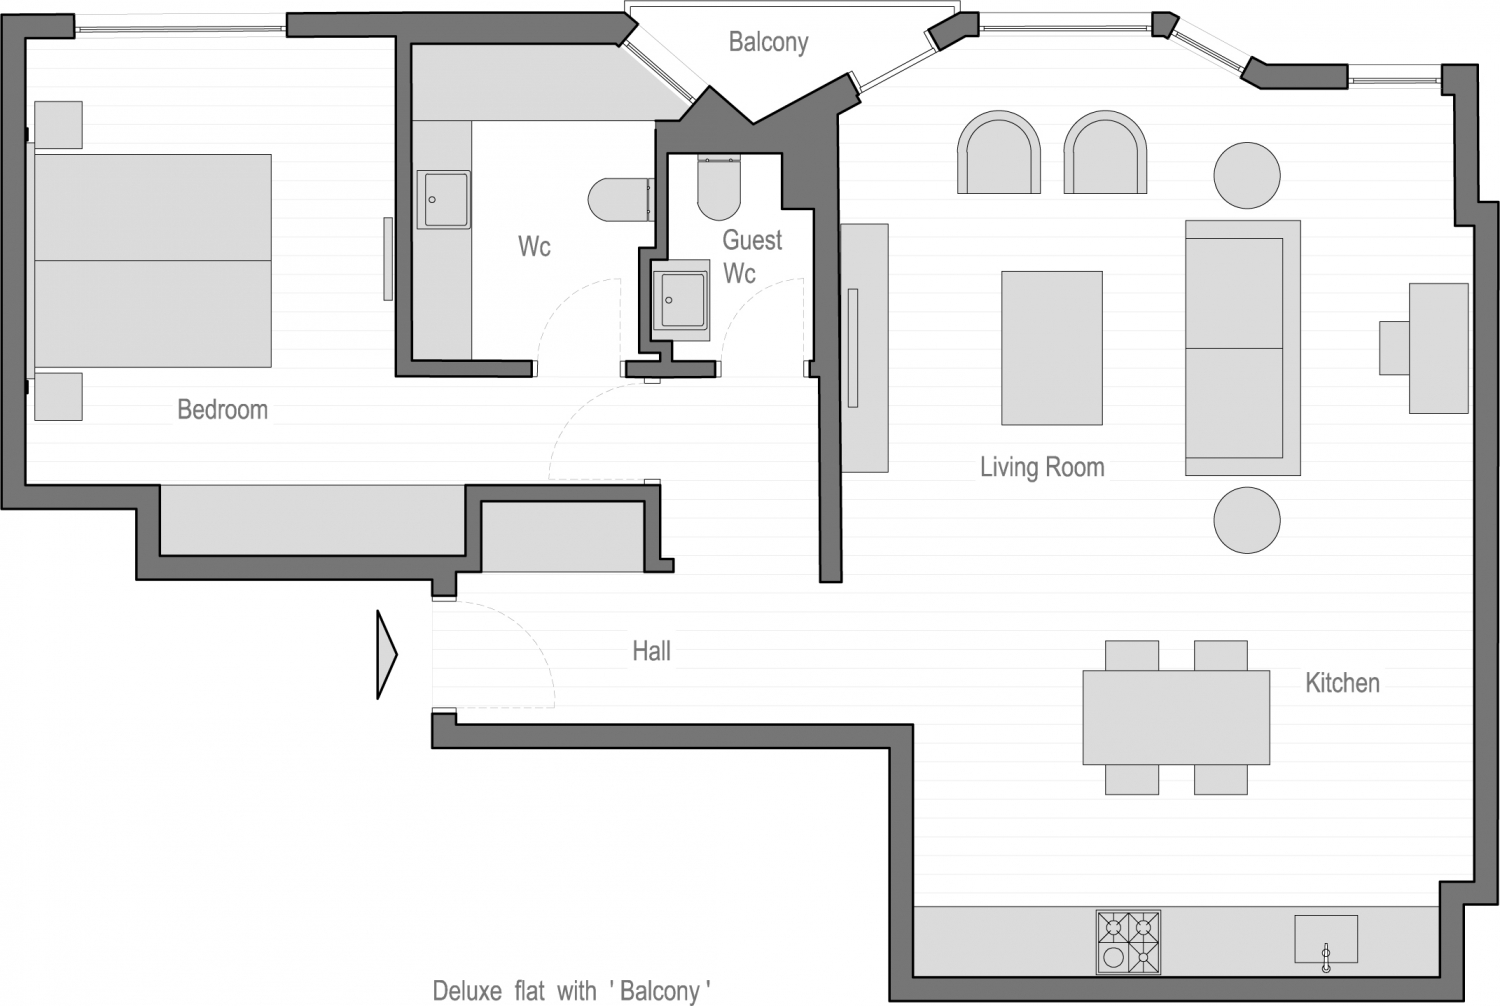 Deluxe Flat with Balcony